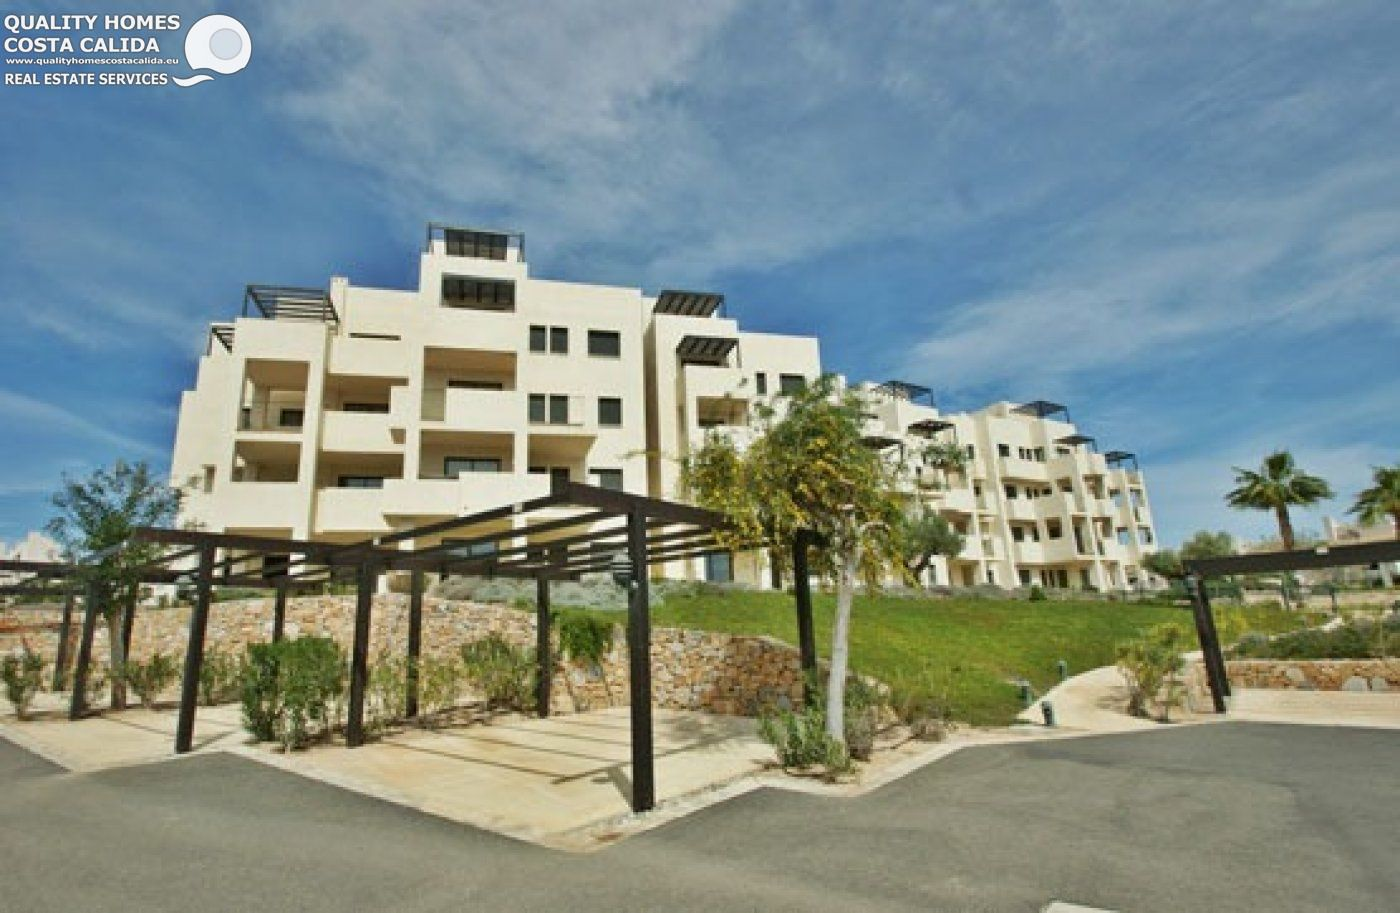 Apartment ref 3265-02950 for sale in Corvera Spain - Quality Homes Costa Cálida